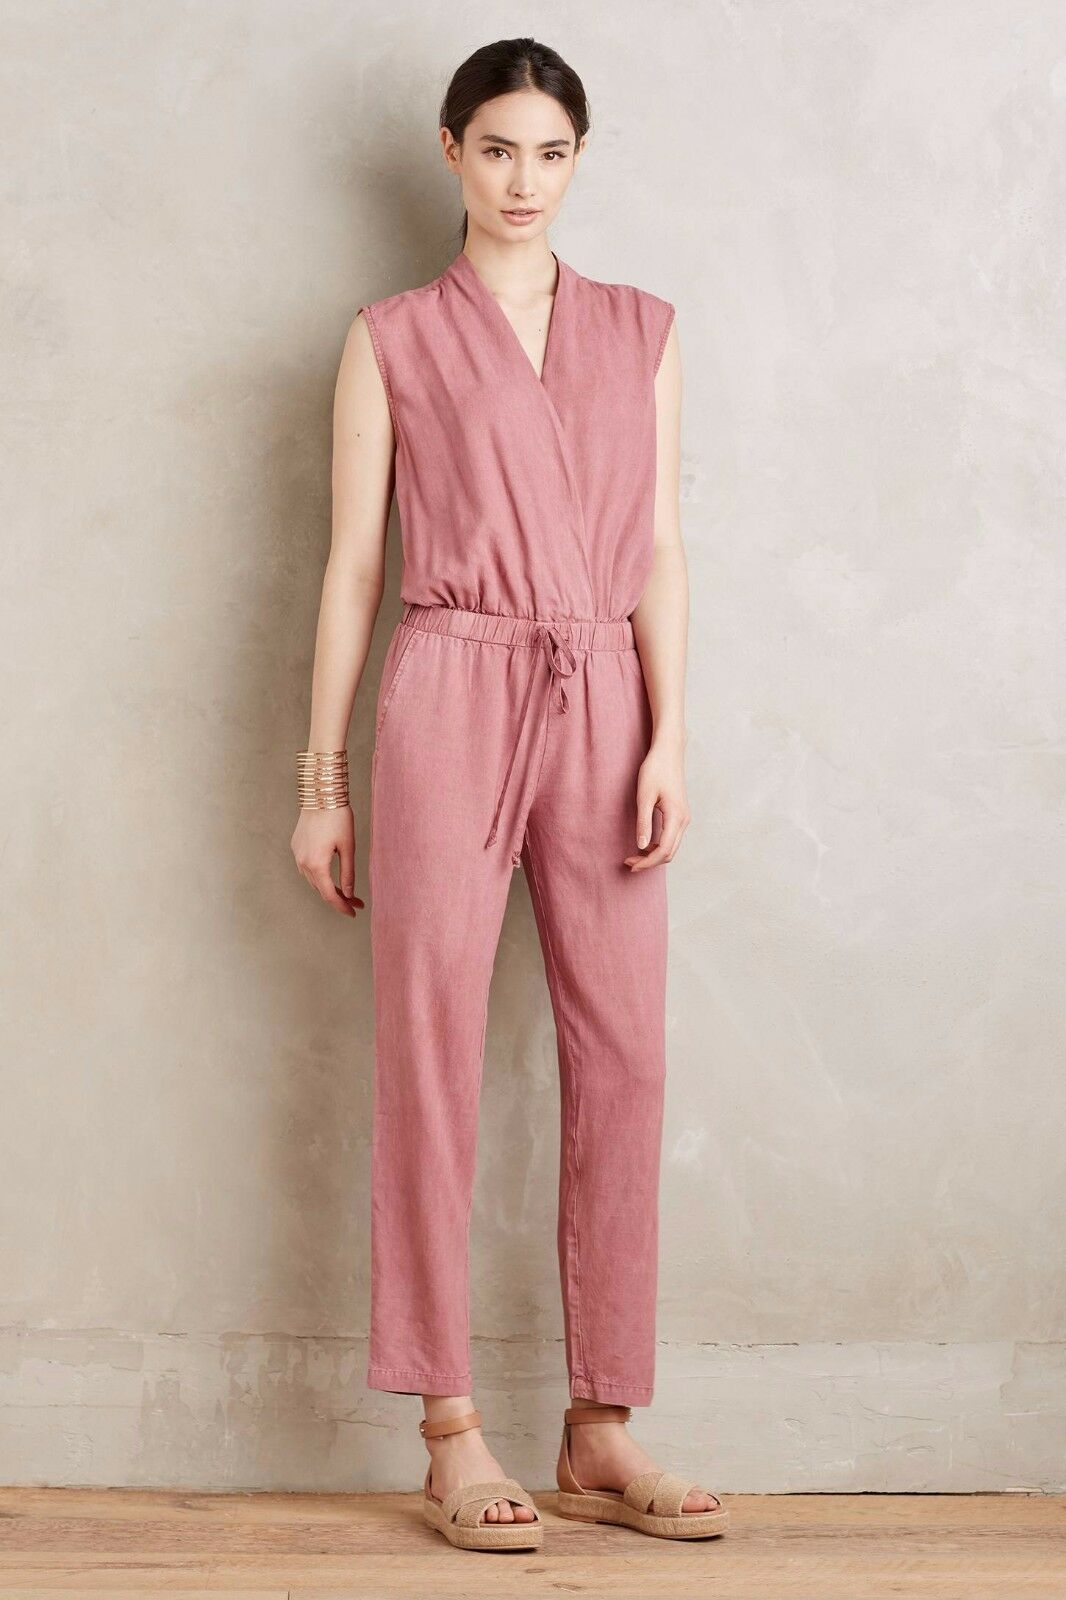 NWoT Anthropologie Cloth & Stone Amara Mignon in Pink Cross Front Jumpsuit XL